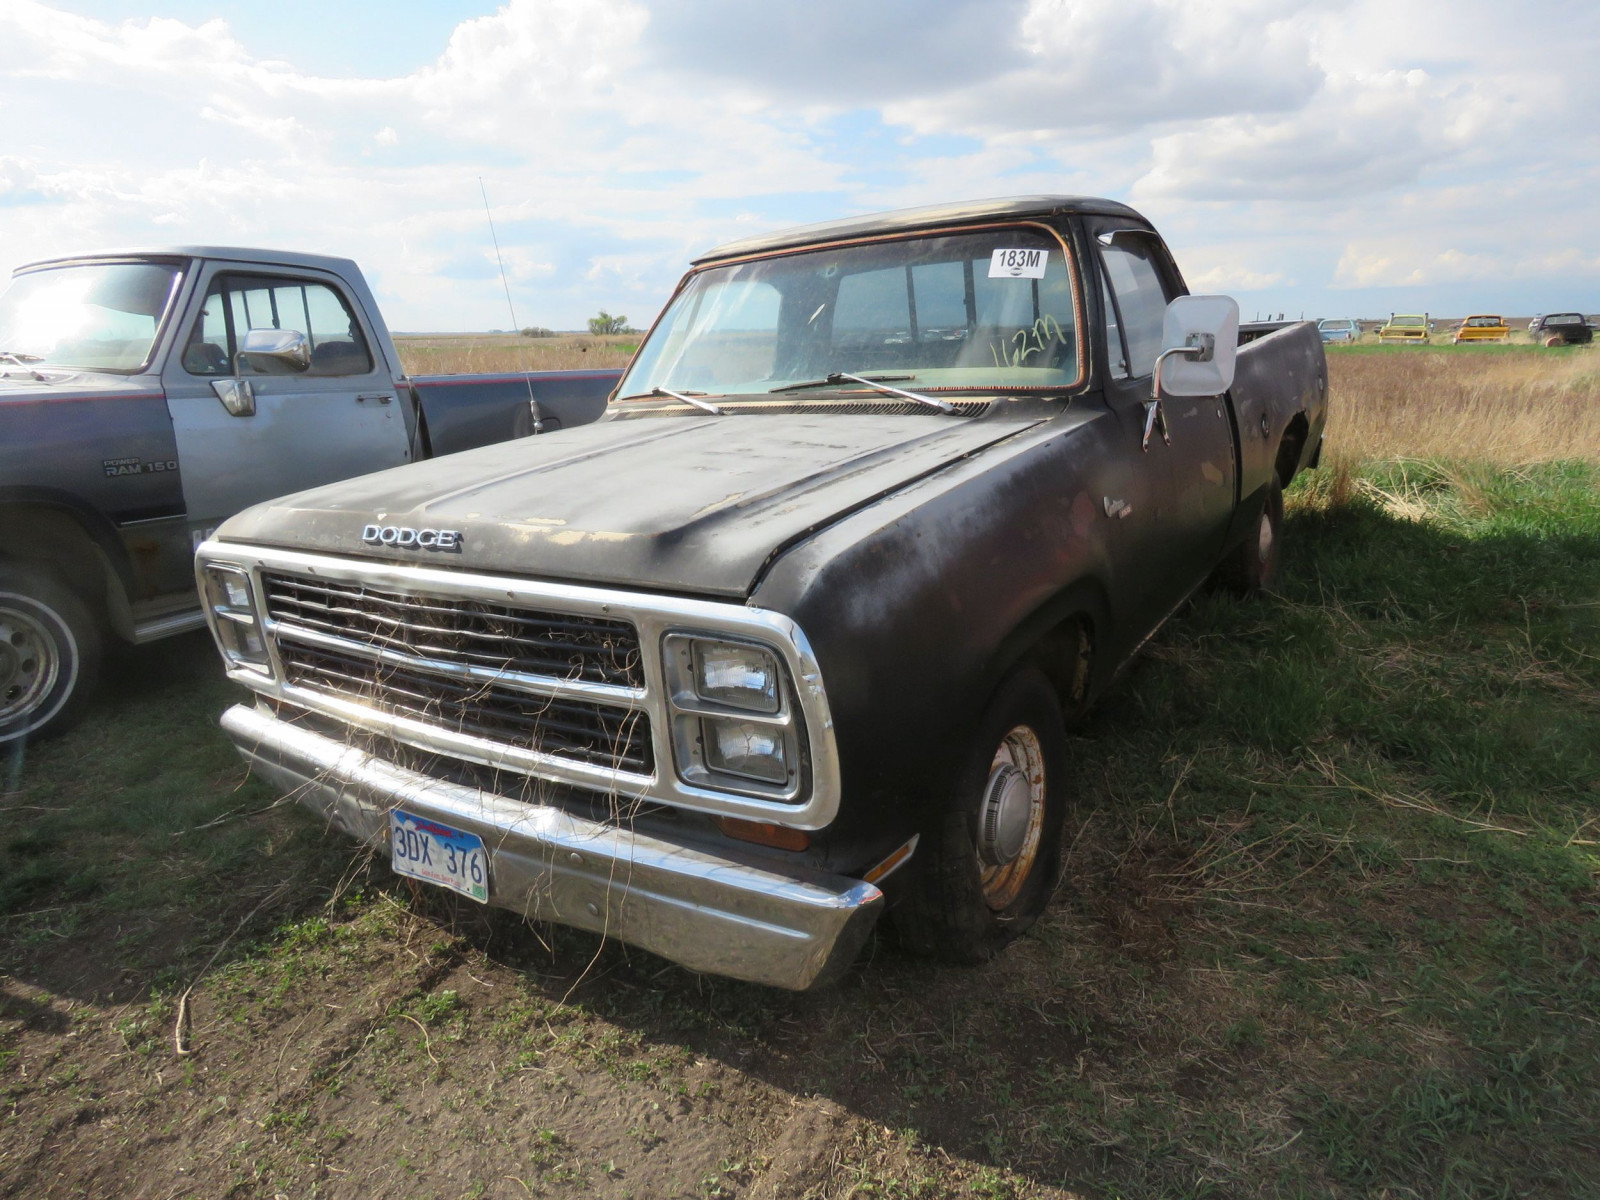 Dodge D150 Pickup - Image 1